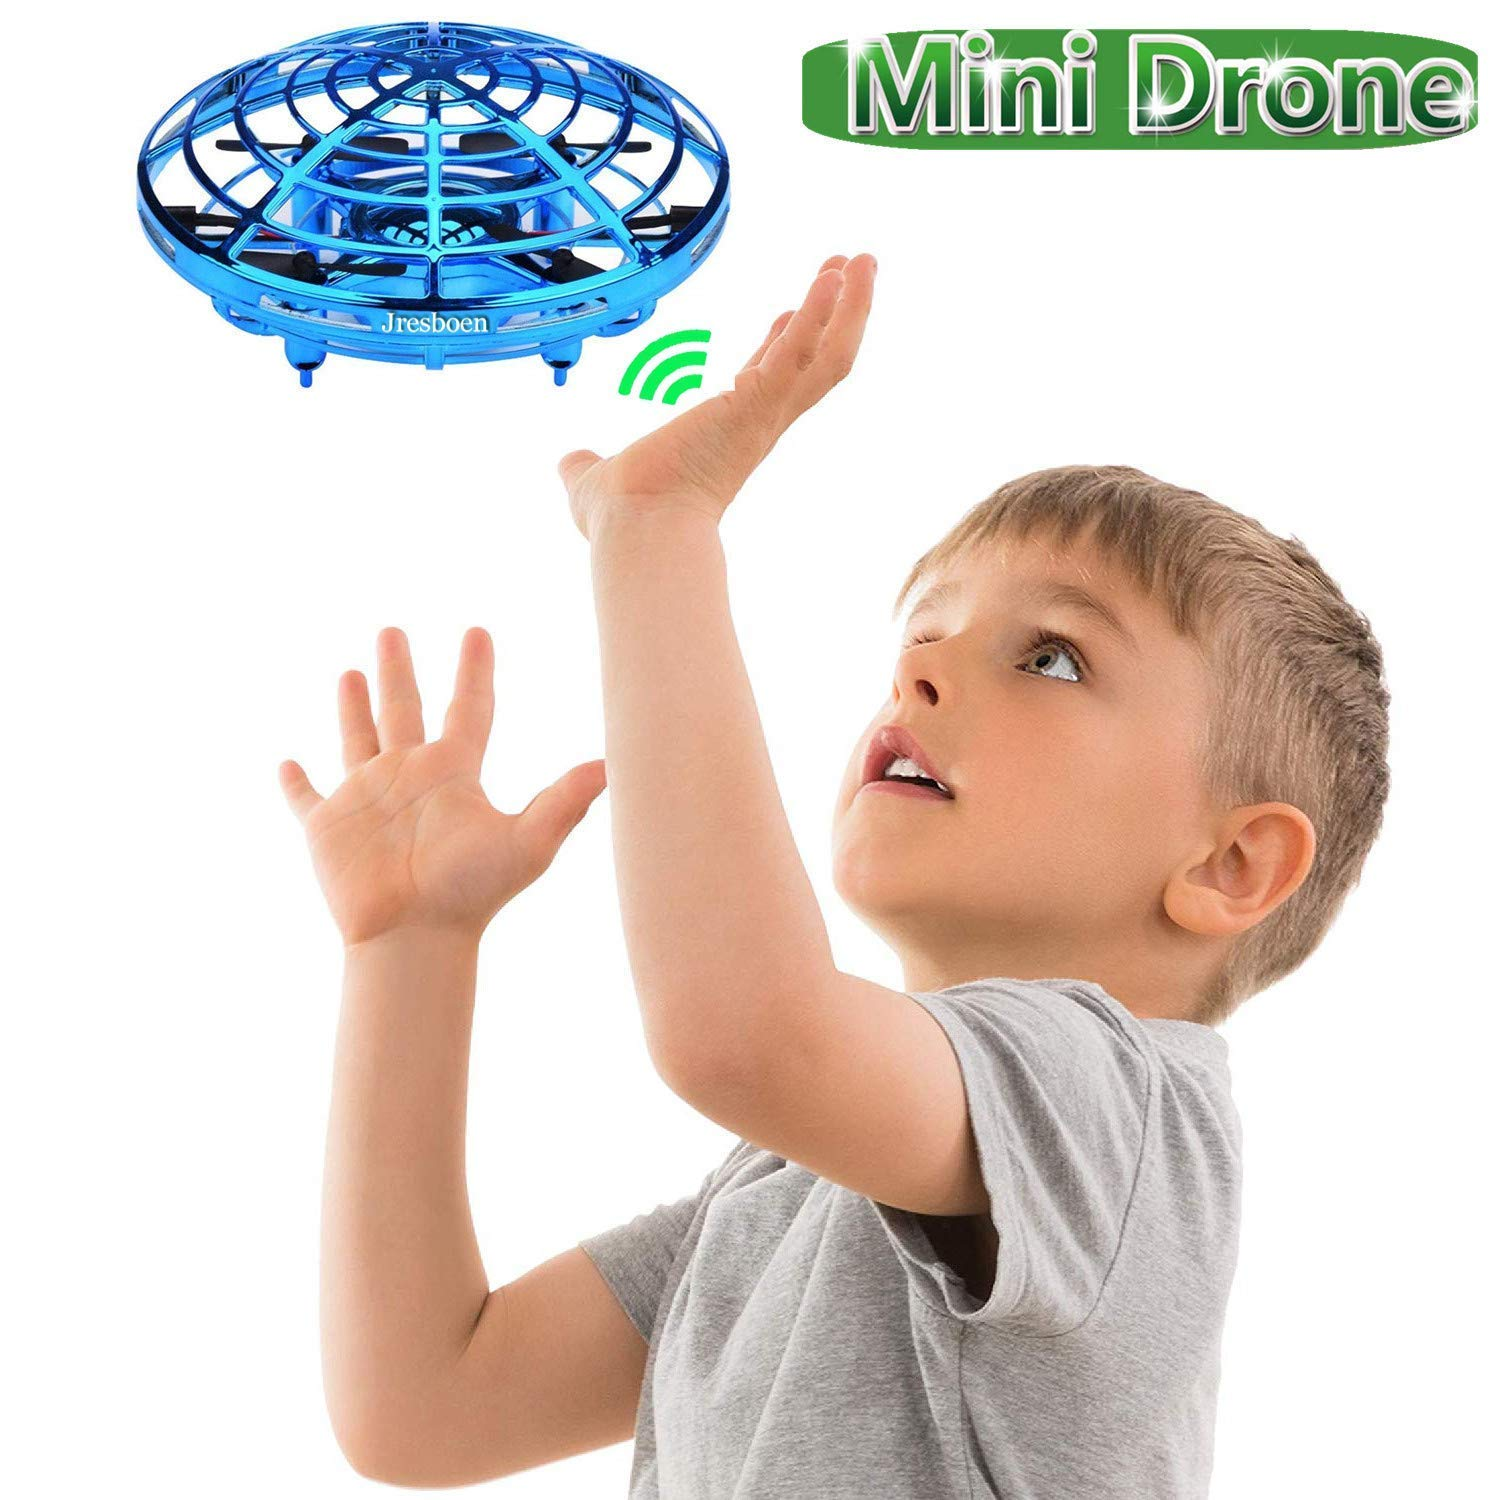 UFO Flying Ball Drone Toys, Jresboen [updated] Mini Drone Helicopter Infrared Sensing & Automatic Obstacle Avoidance Mini Quadcopter Drone Induction Aircraft Flying Saucer Toy Gift for Boys Girls Kids